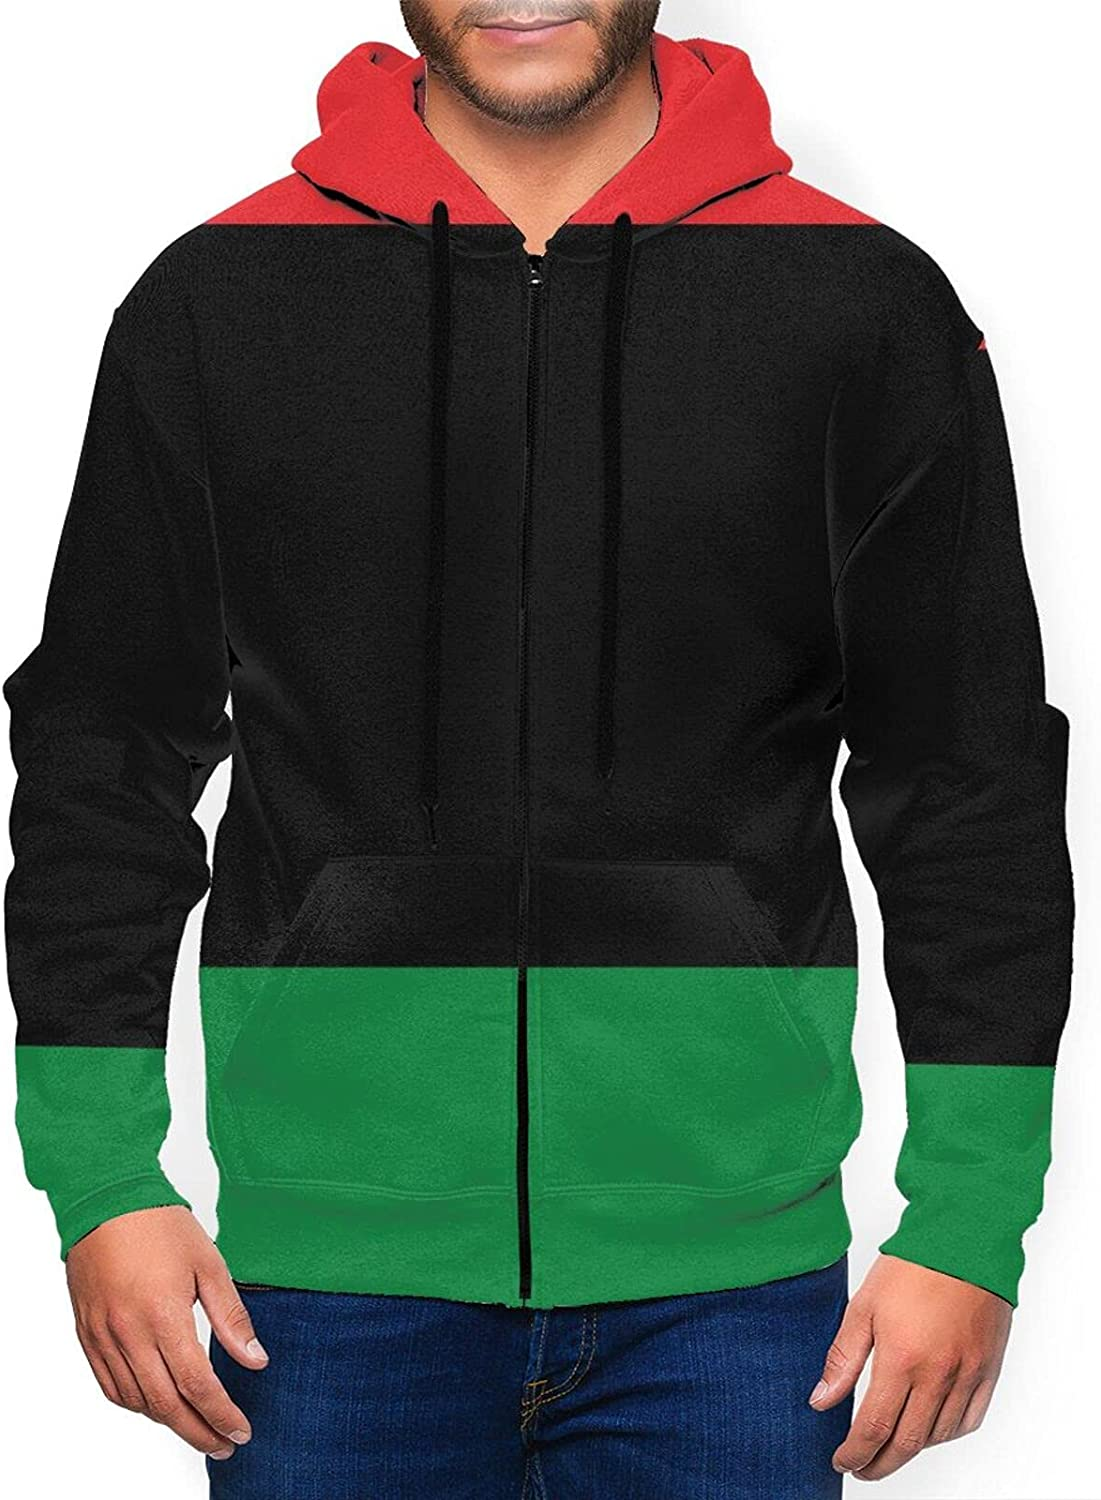 Hello New products Directly managed store world's highest quality popular Gorgeous Men'S Hoodie African Flag Up Fit Slim Stripes Zip